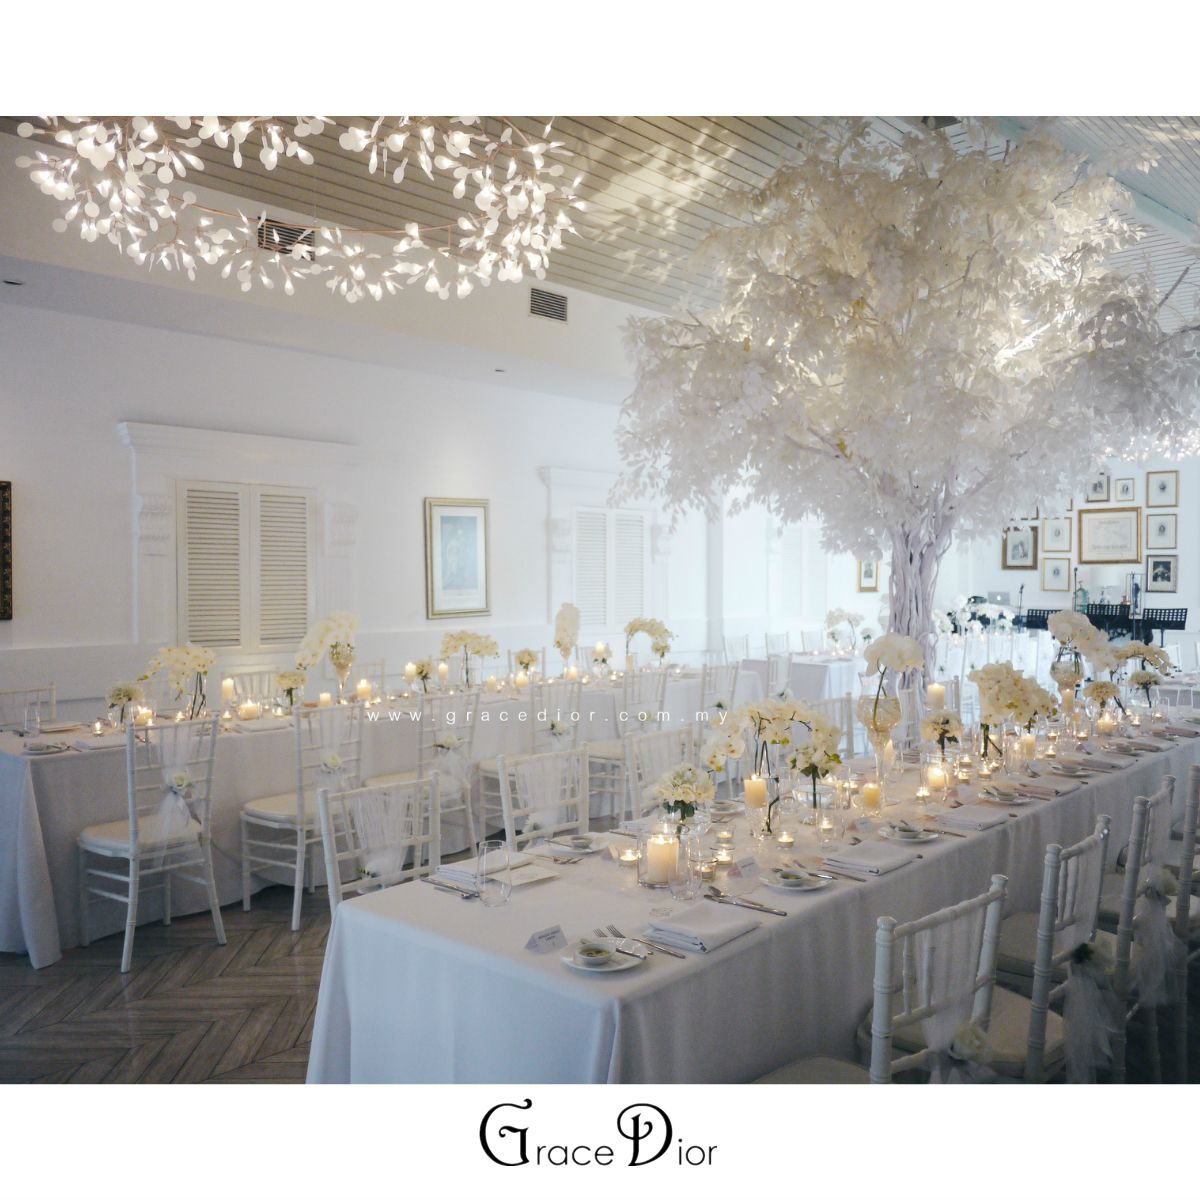 Macalister mansion penang wedding decor by gracedior discover more macalister mansion penang wedding decor by gracedior discover more at gracedior junglespirit Images